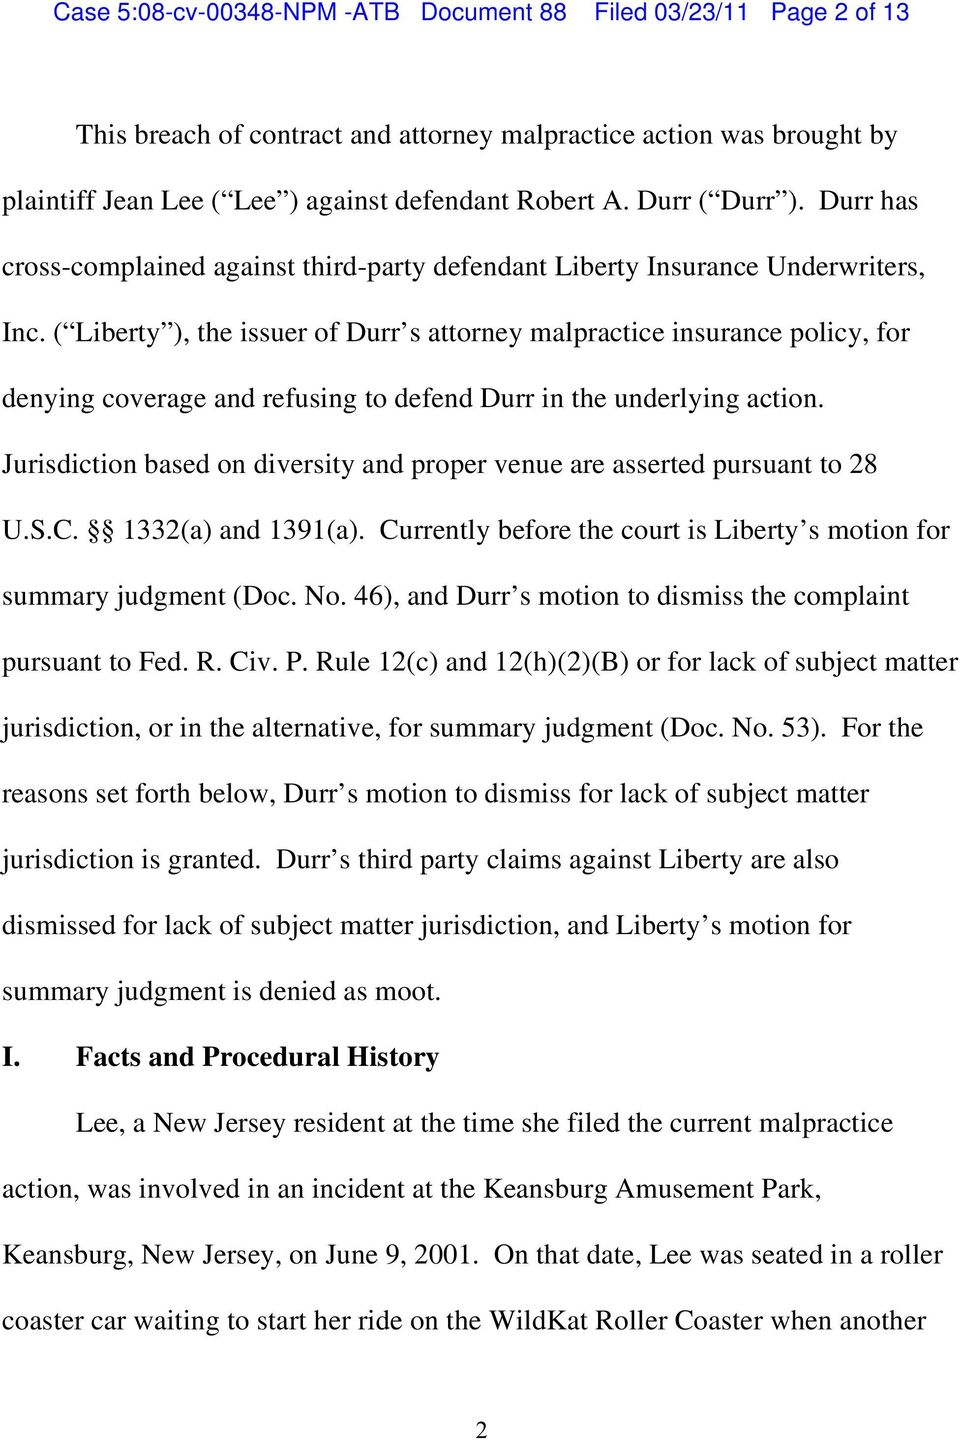 ( Liberty ), the issuer of Durr s attorney malpractice insurance policy, for denying coverage and refusing to defend Durr in the underlying action.